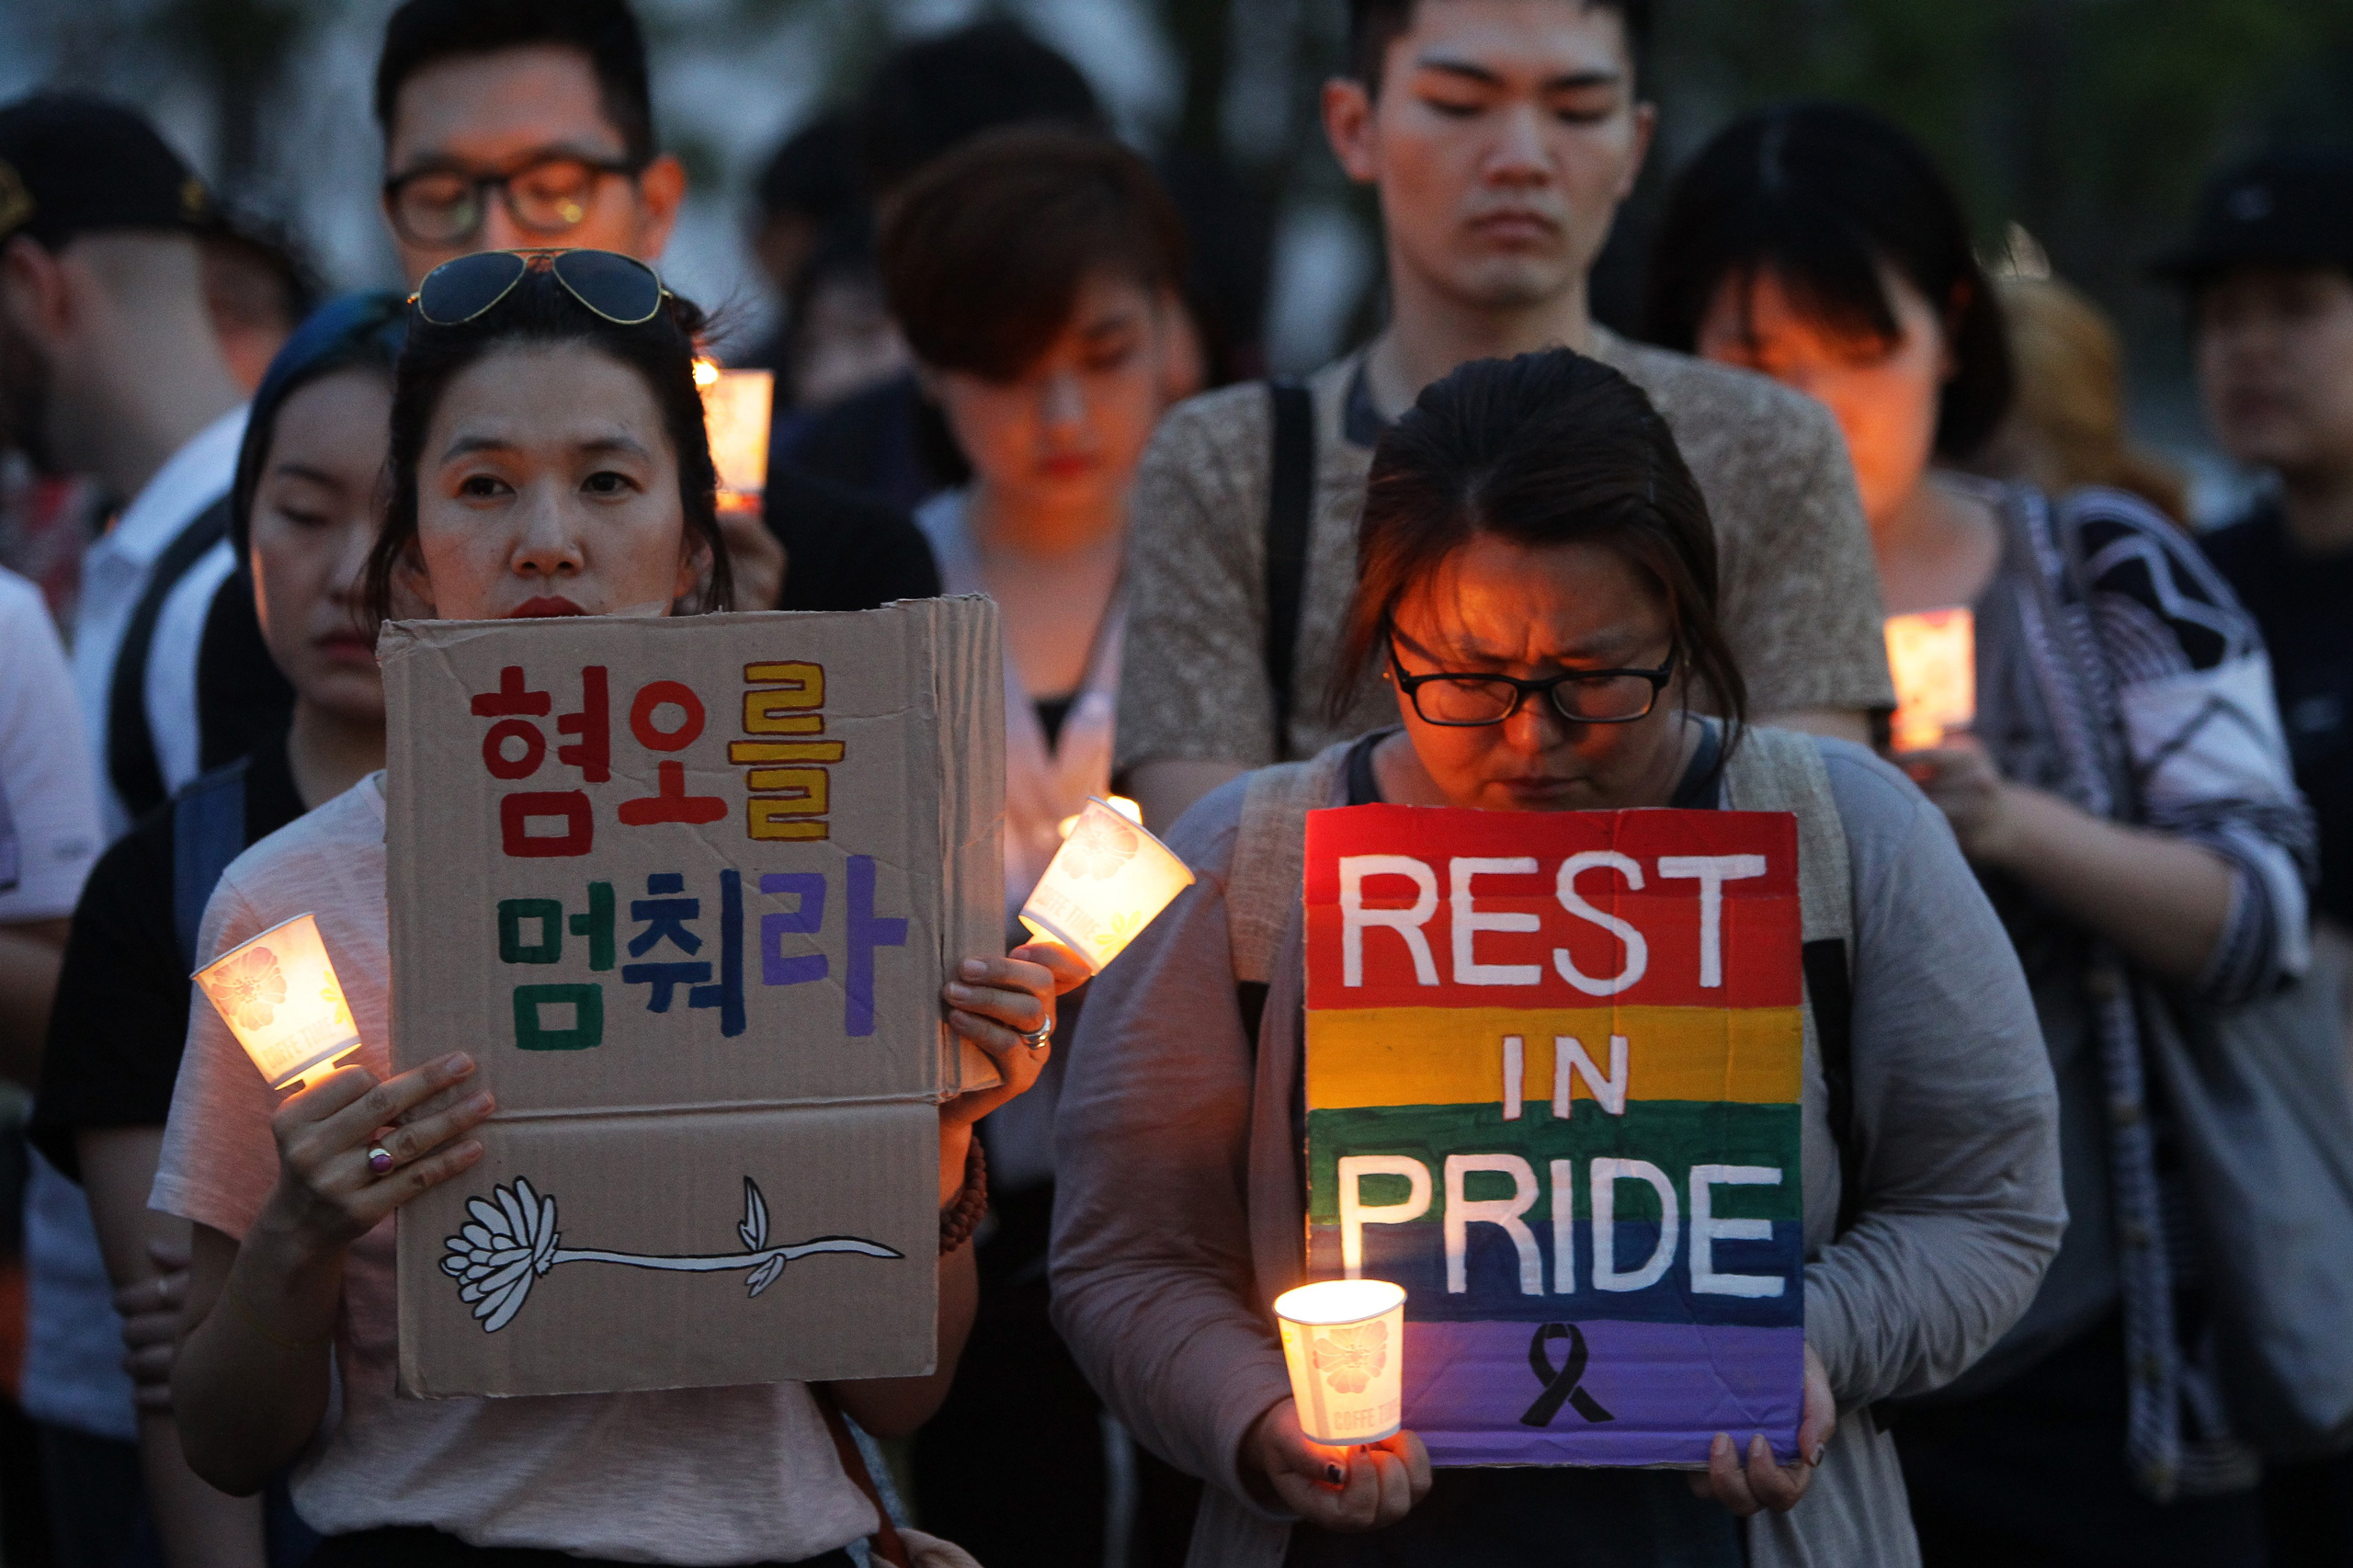 People gather during a vigil in downtown Seoul to remember victims of the shooting at an Orlando nightclub, in Seoul, South Korea, on June 13, 2016.